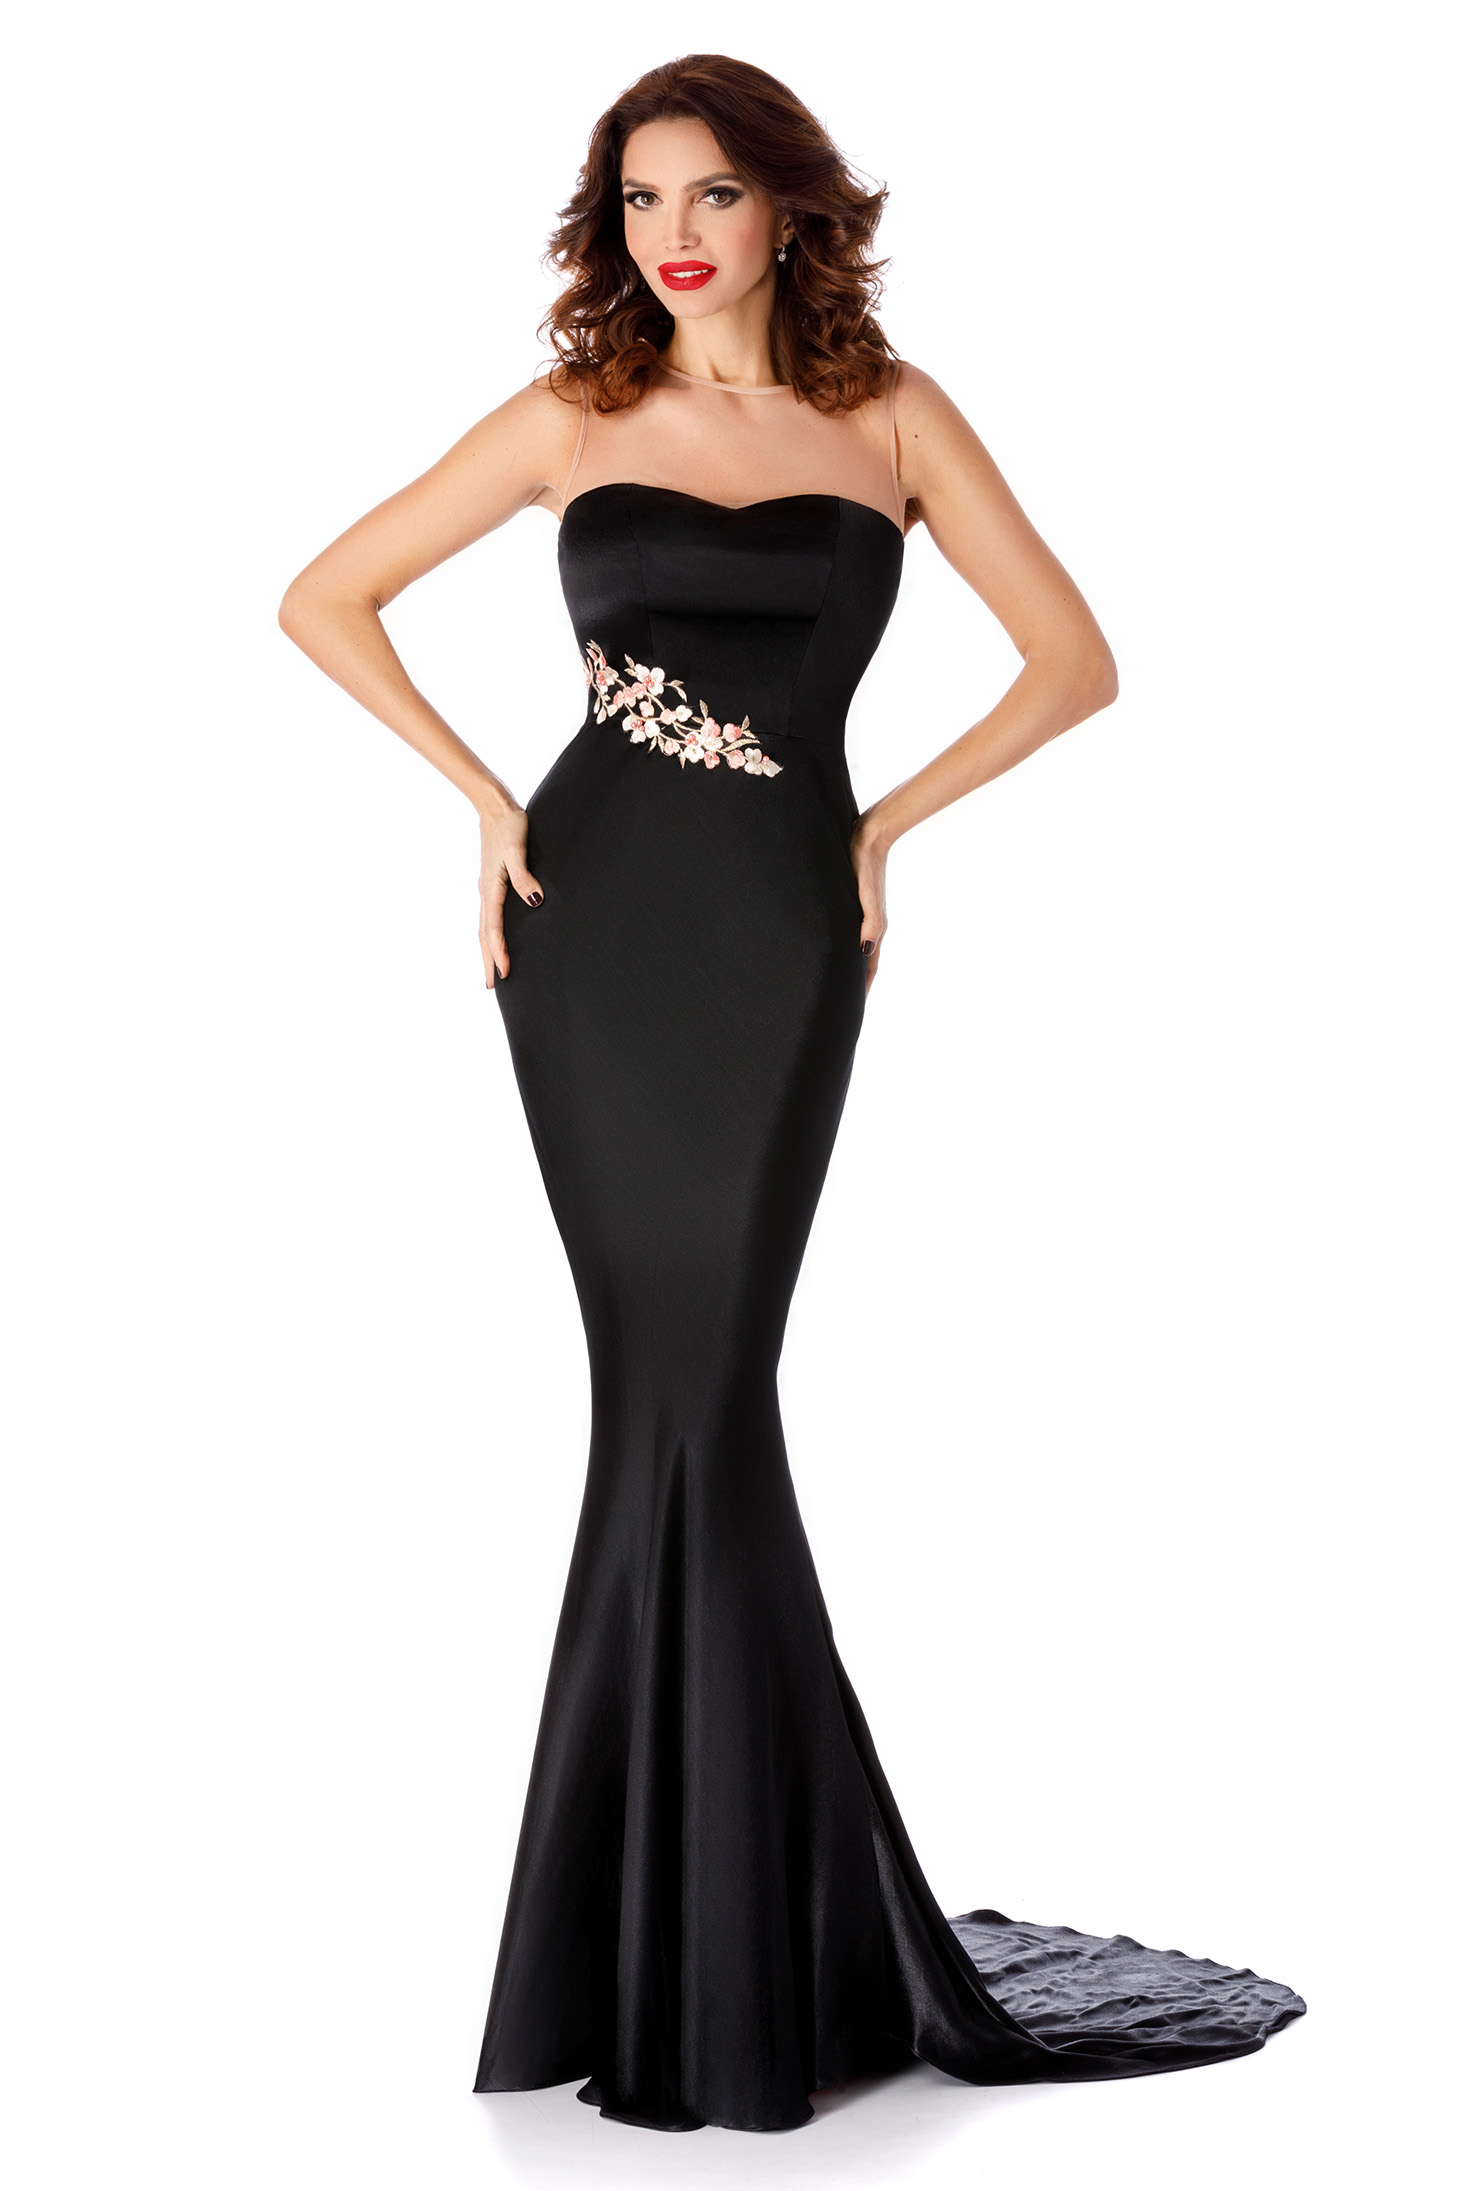 Black occasional mermaid off shoulder dress with lace details